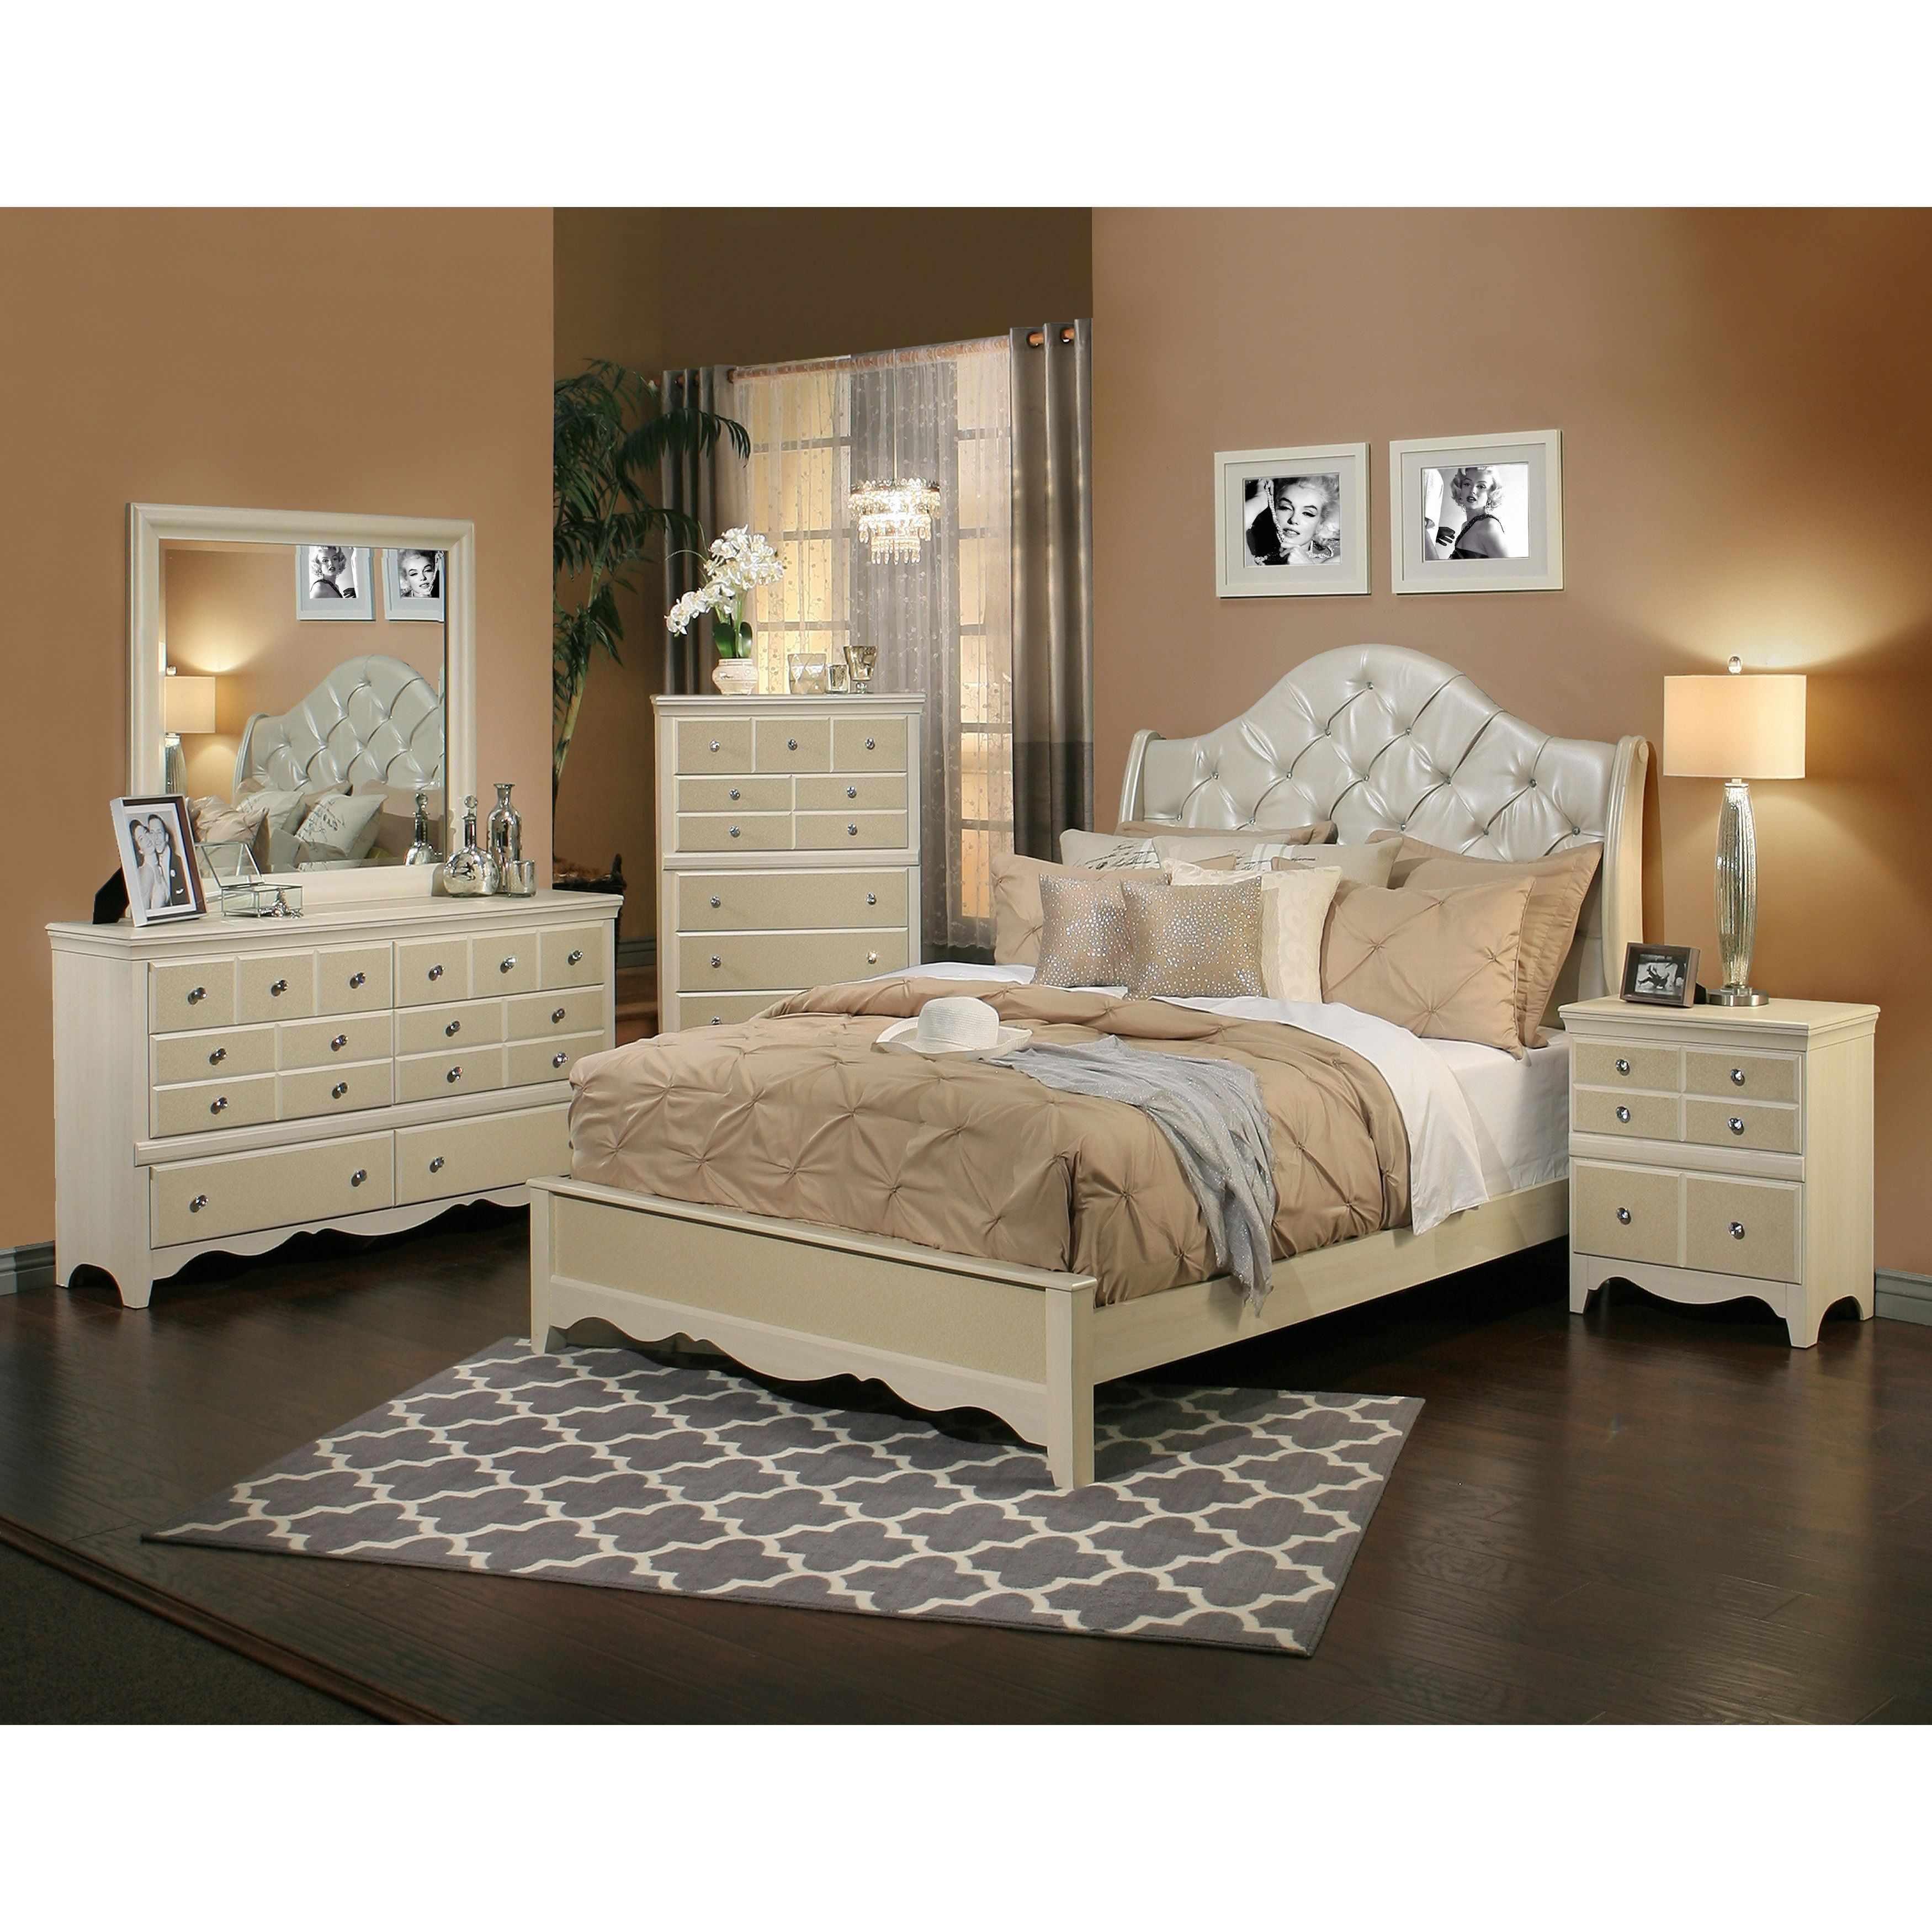 beds desk bed picture kexhrnh loft great twin room create of kids lakehouse a cool with